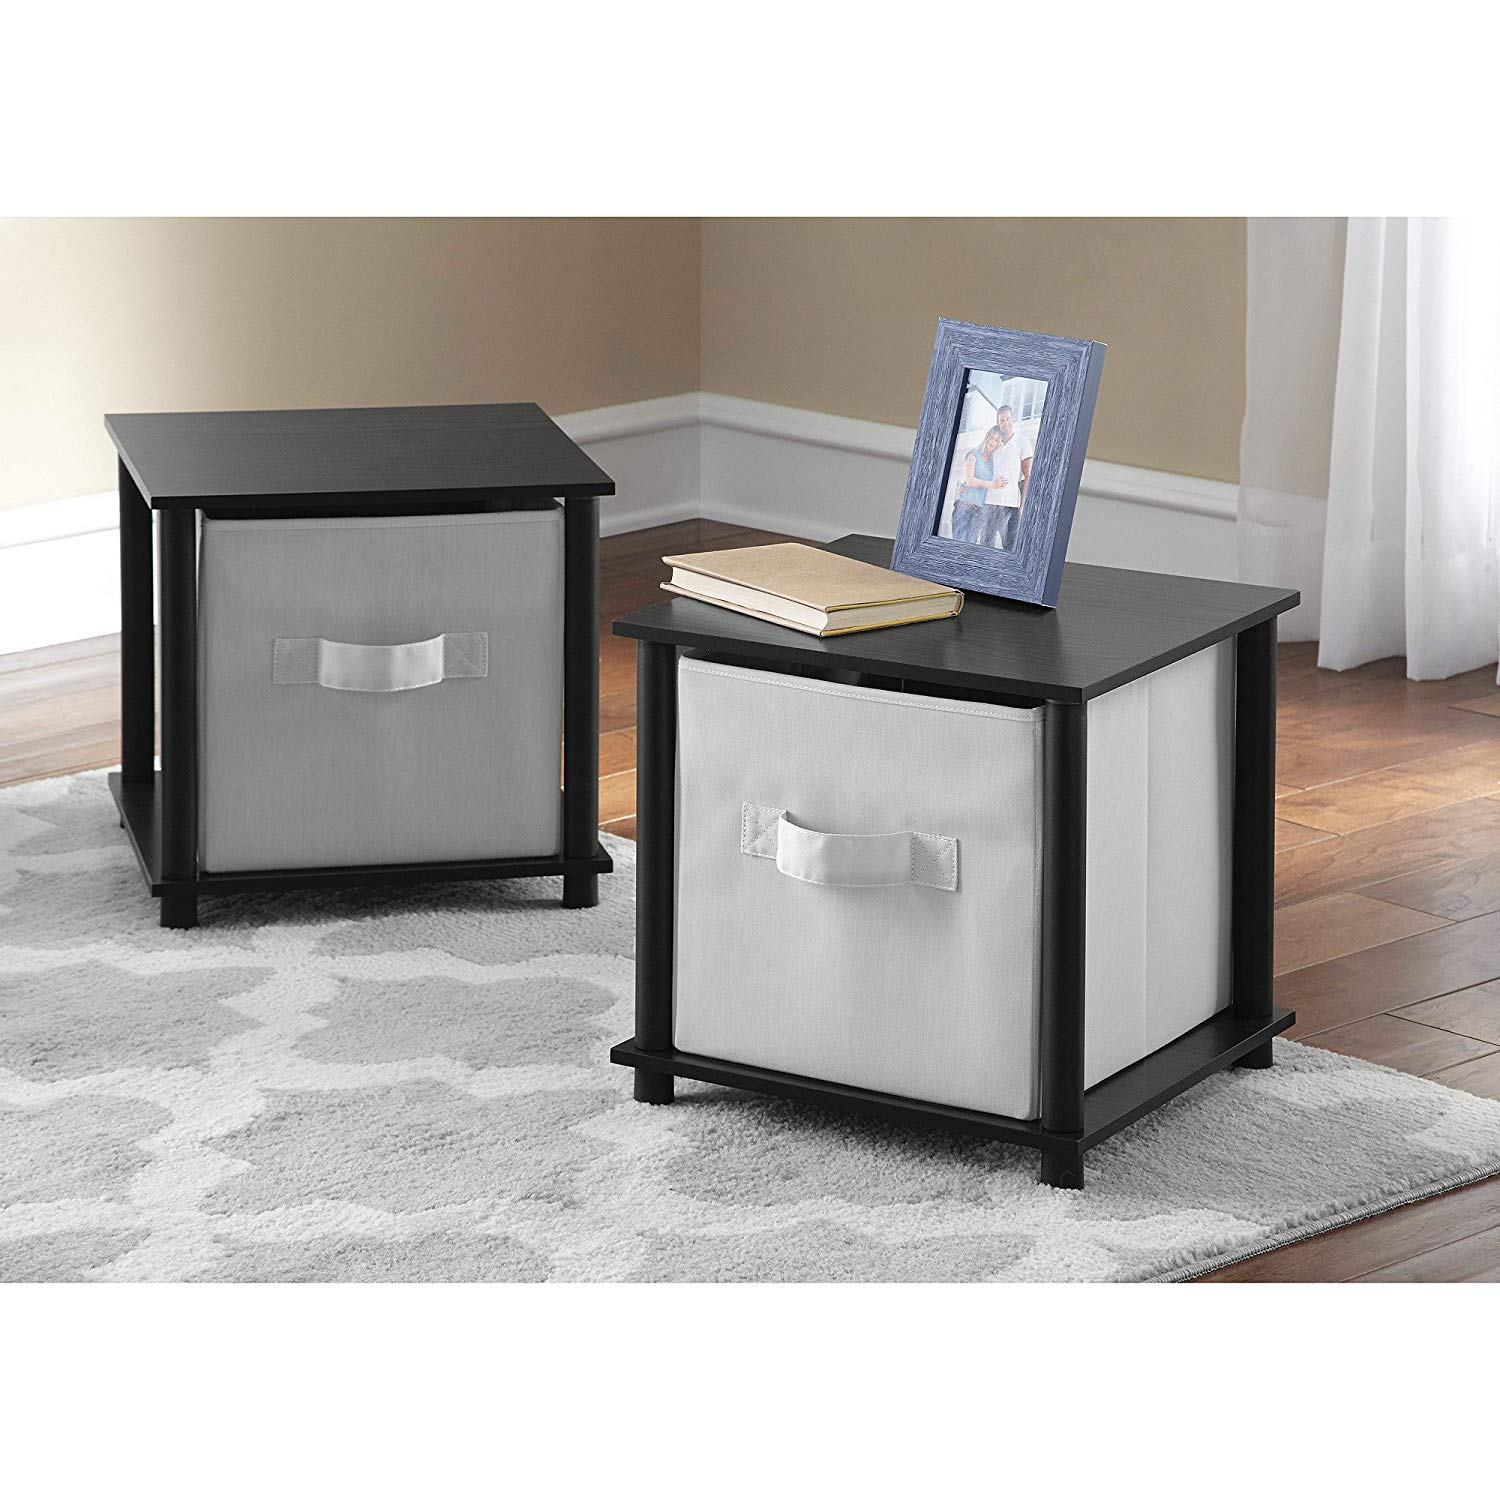 black oak mainstays tools single cube storage shelf end table finish assembly instructions side tables set kitchen dining glass coffee for living room kmart furniture homesense